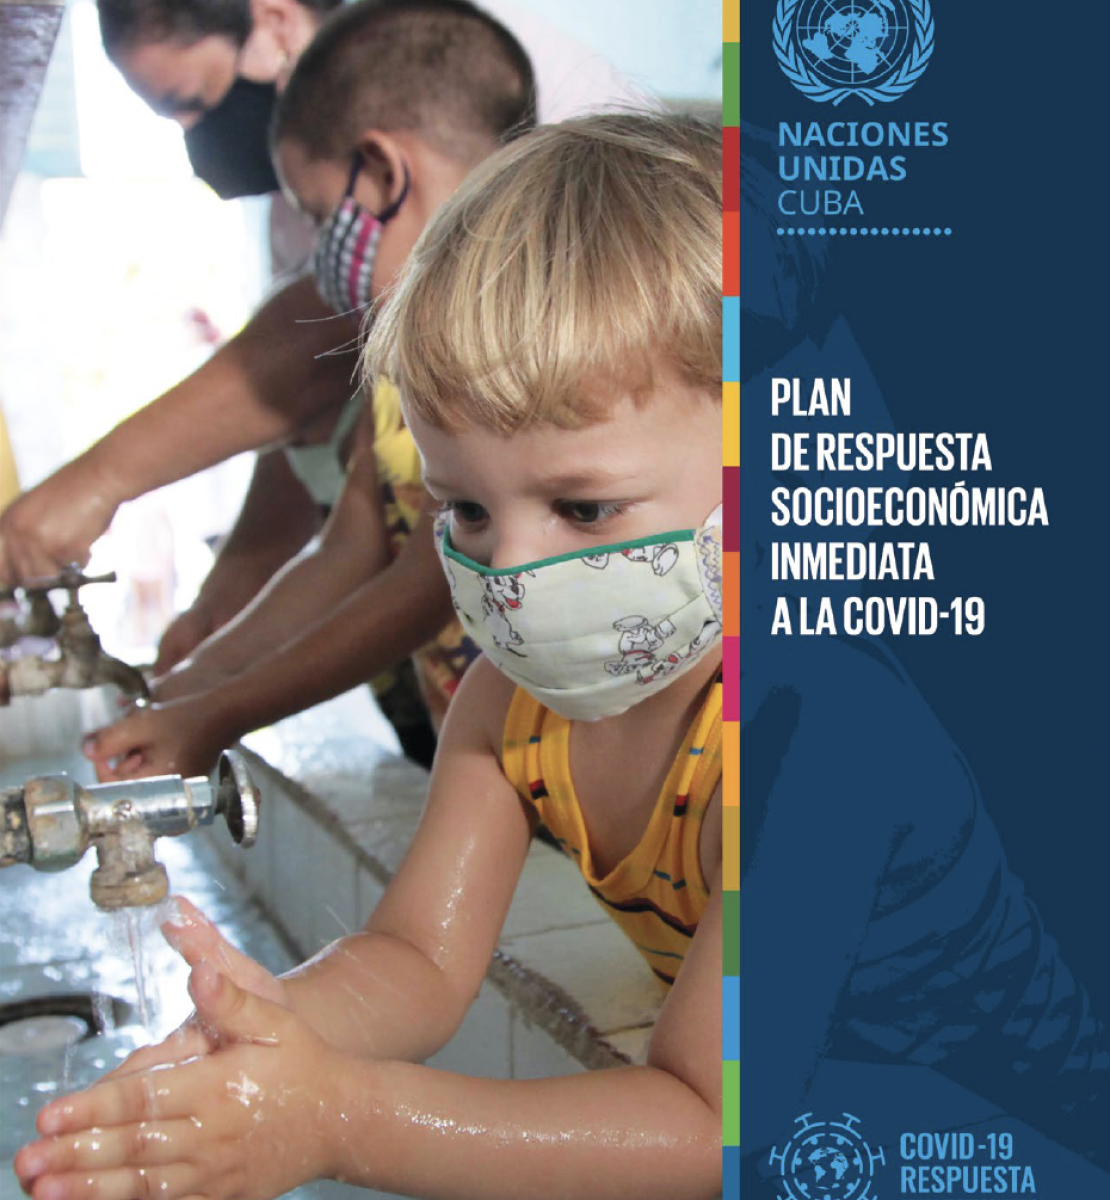 The cover shows on the left a photo of children and adults washing their hands with the title to the right in white against a blue vertical overlay.